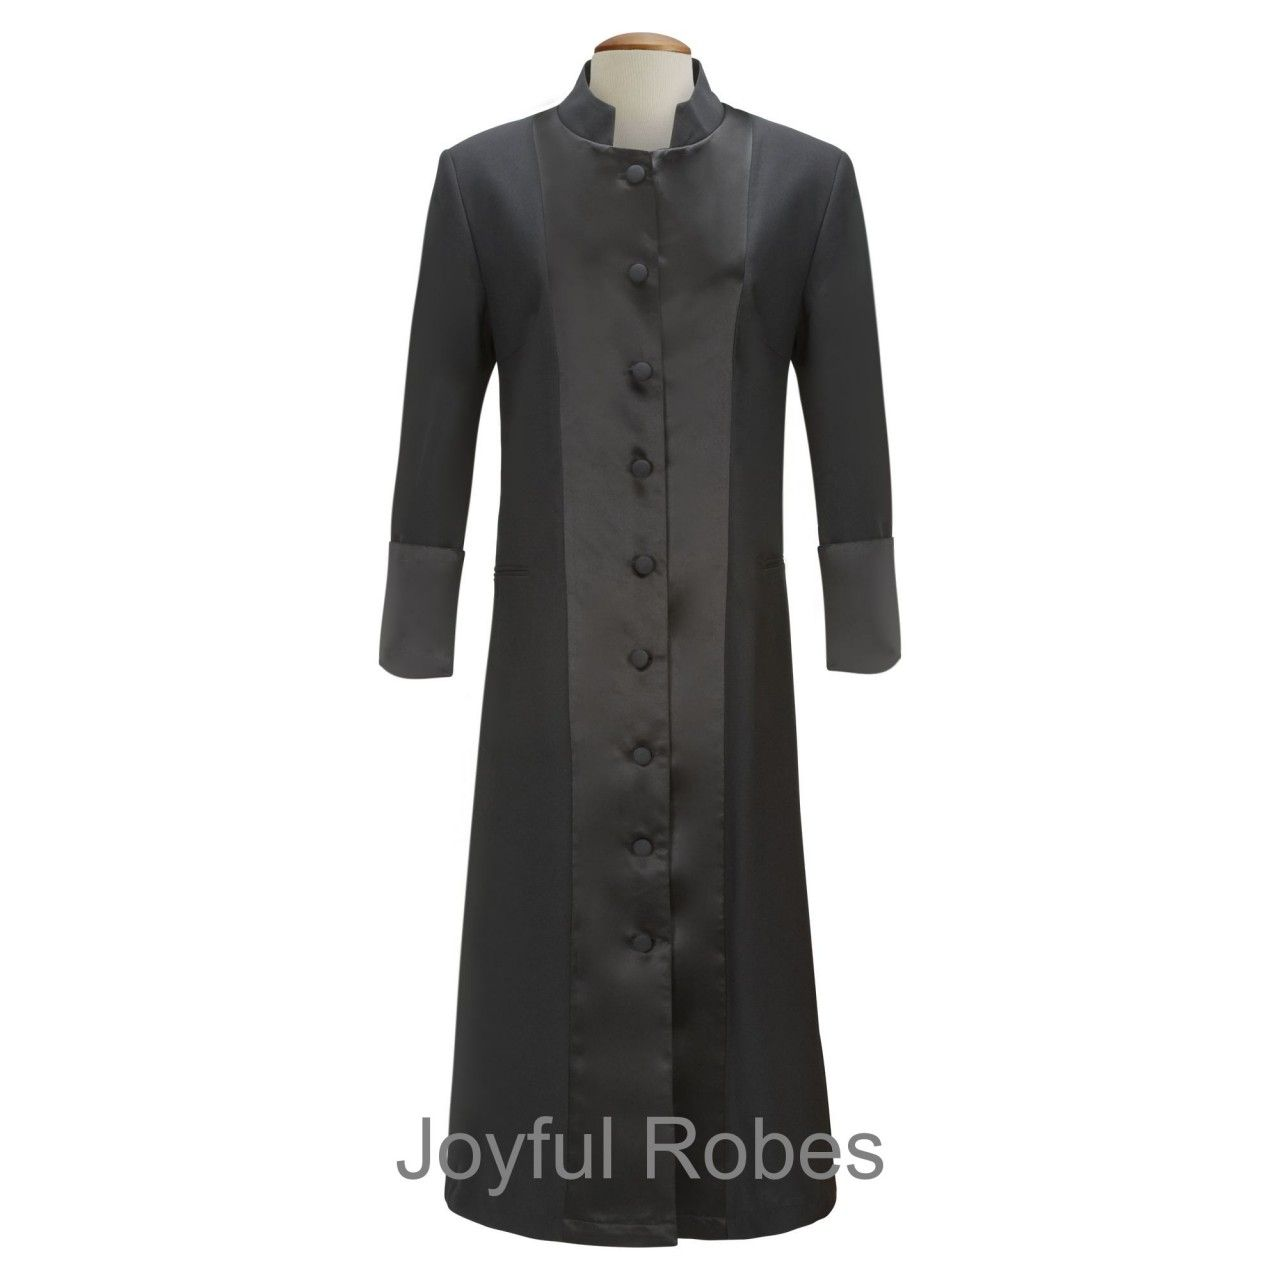 126 W. Women's Satin Pastor/Clergy Robe Black/Black